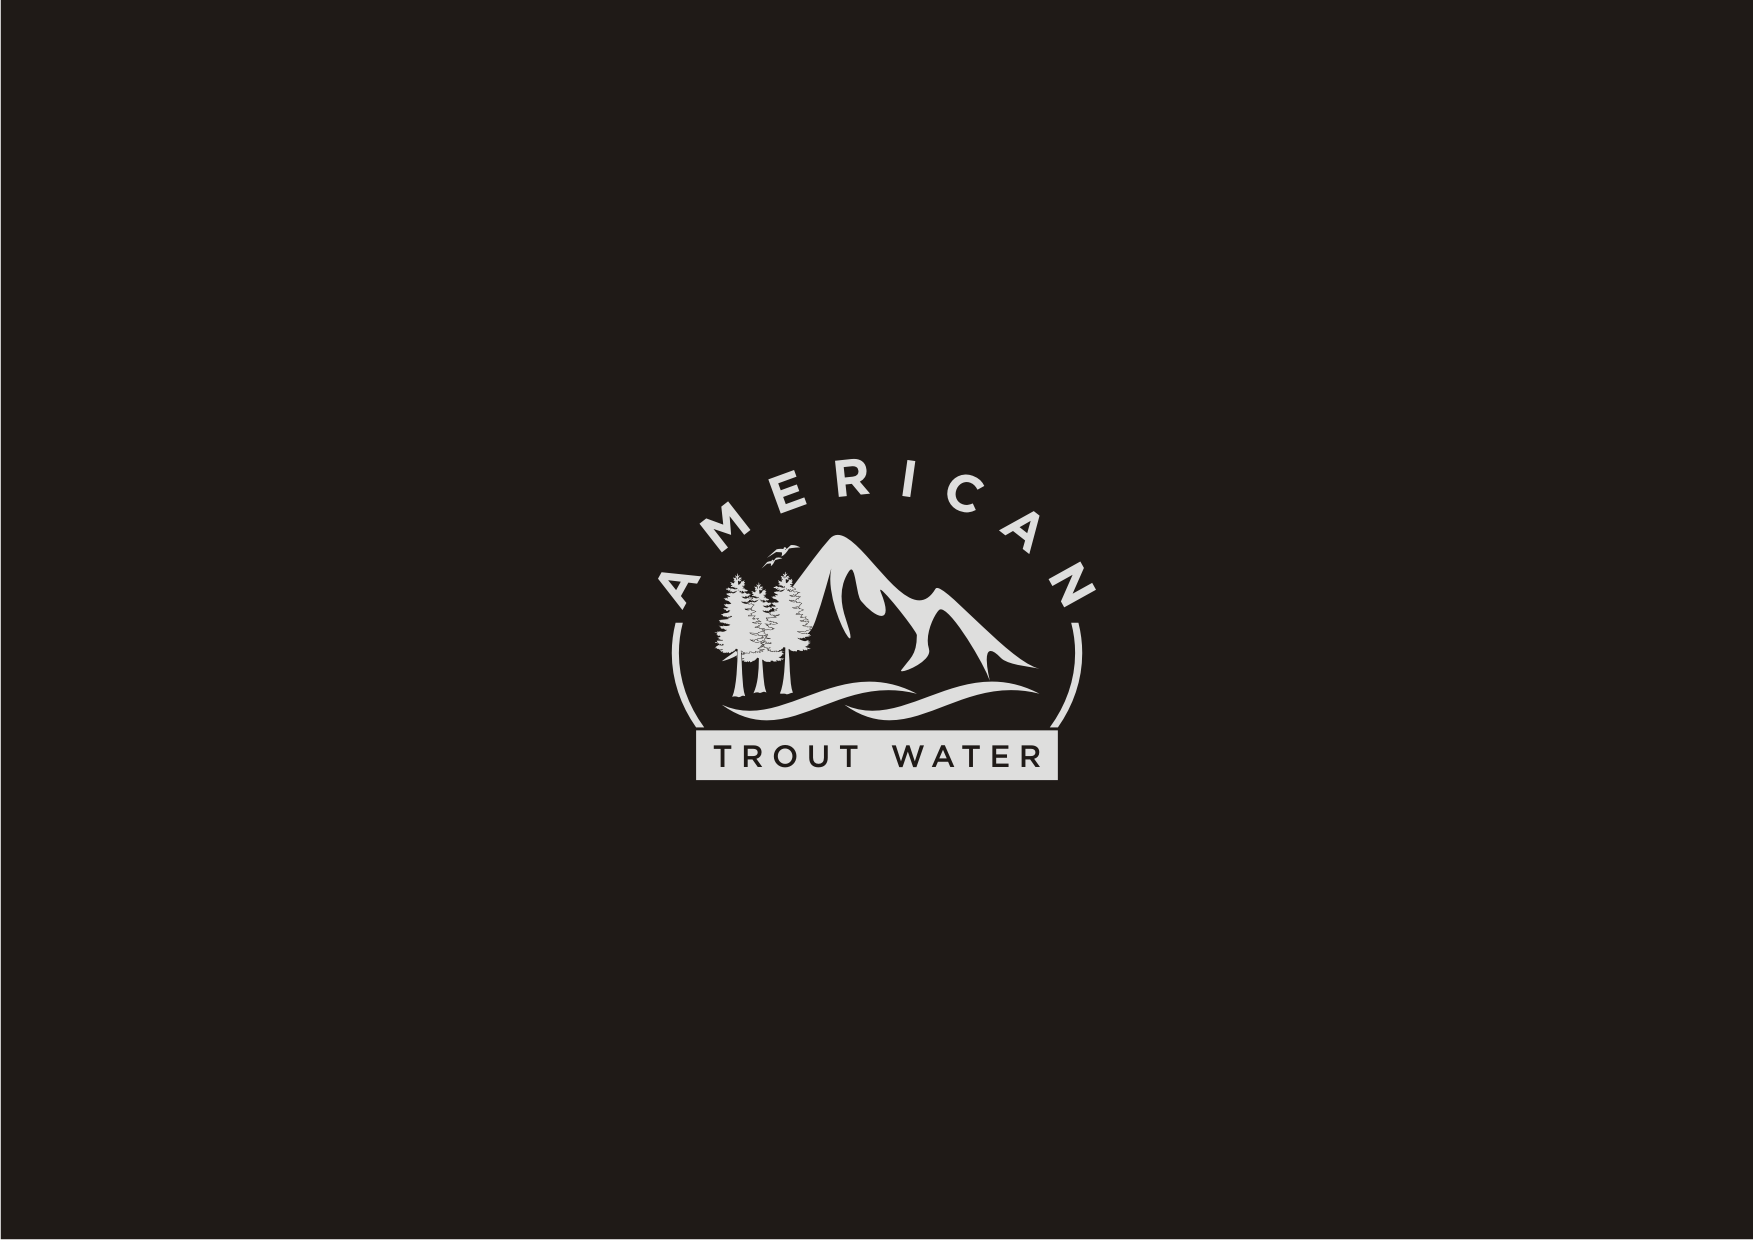 Logo Design by Sigitumarali Sigit - Entry No. 3 in the Logo Design Contest American Trout Water Logo Design.